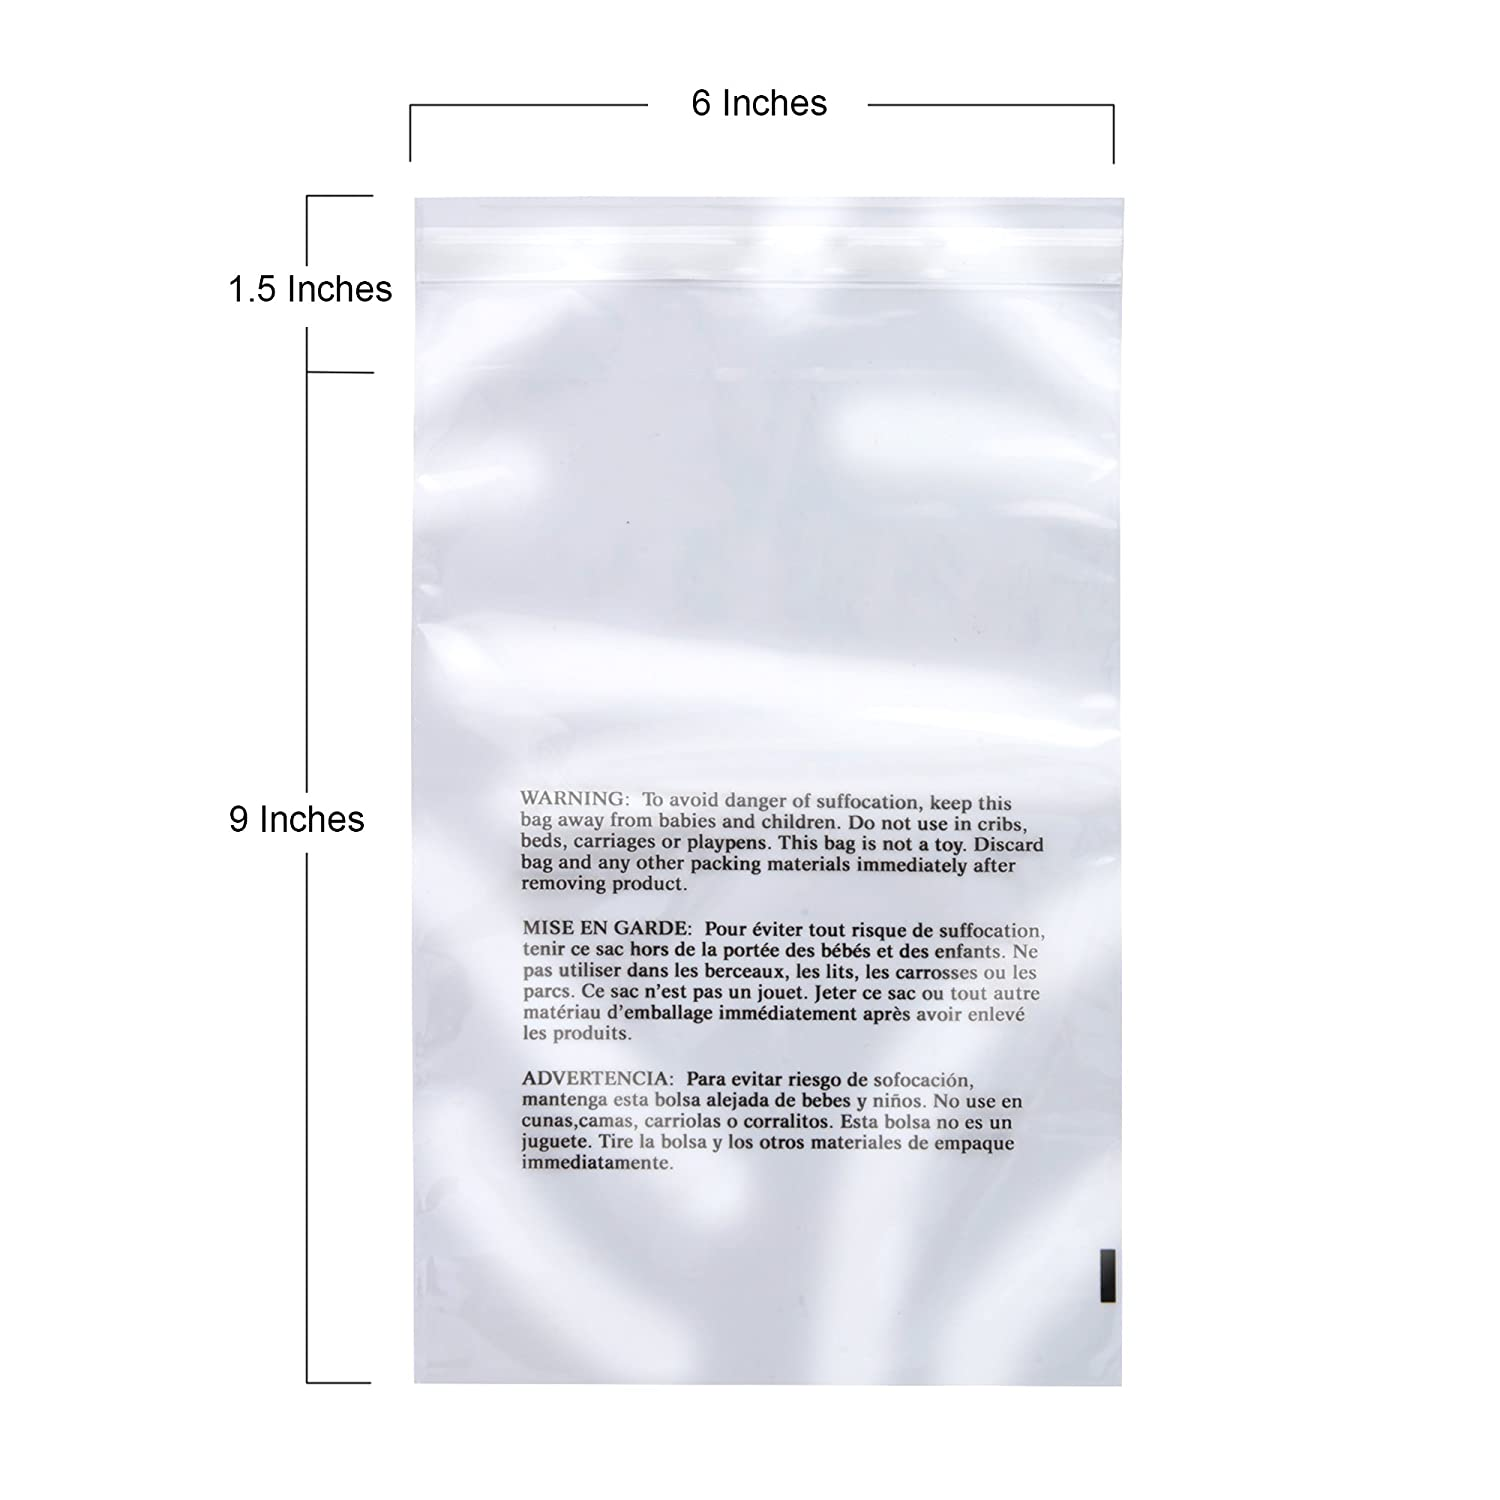 Amazon.com: Retail Supply Co Clear Poly Bags with Suffocation Warning - Multiple Size Options Available - (11x14 Resealable): Office Products